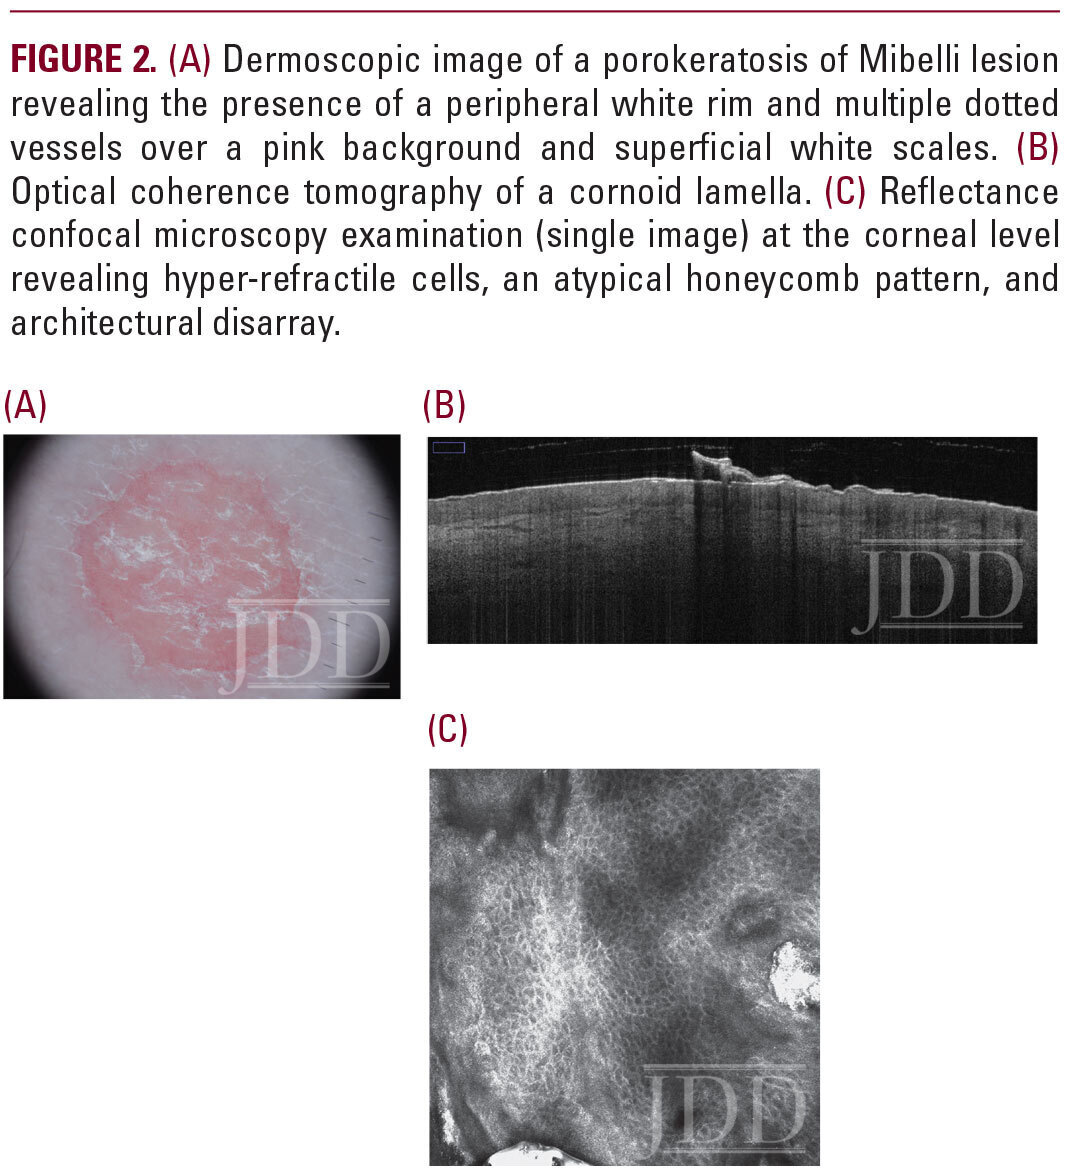 Dermoscopic image of a porokeratosis of Mibelli lesion